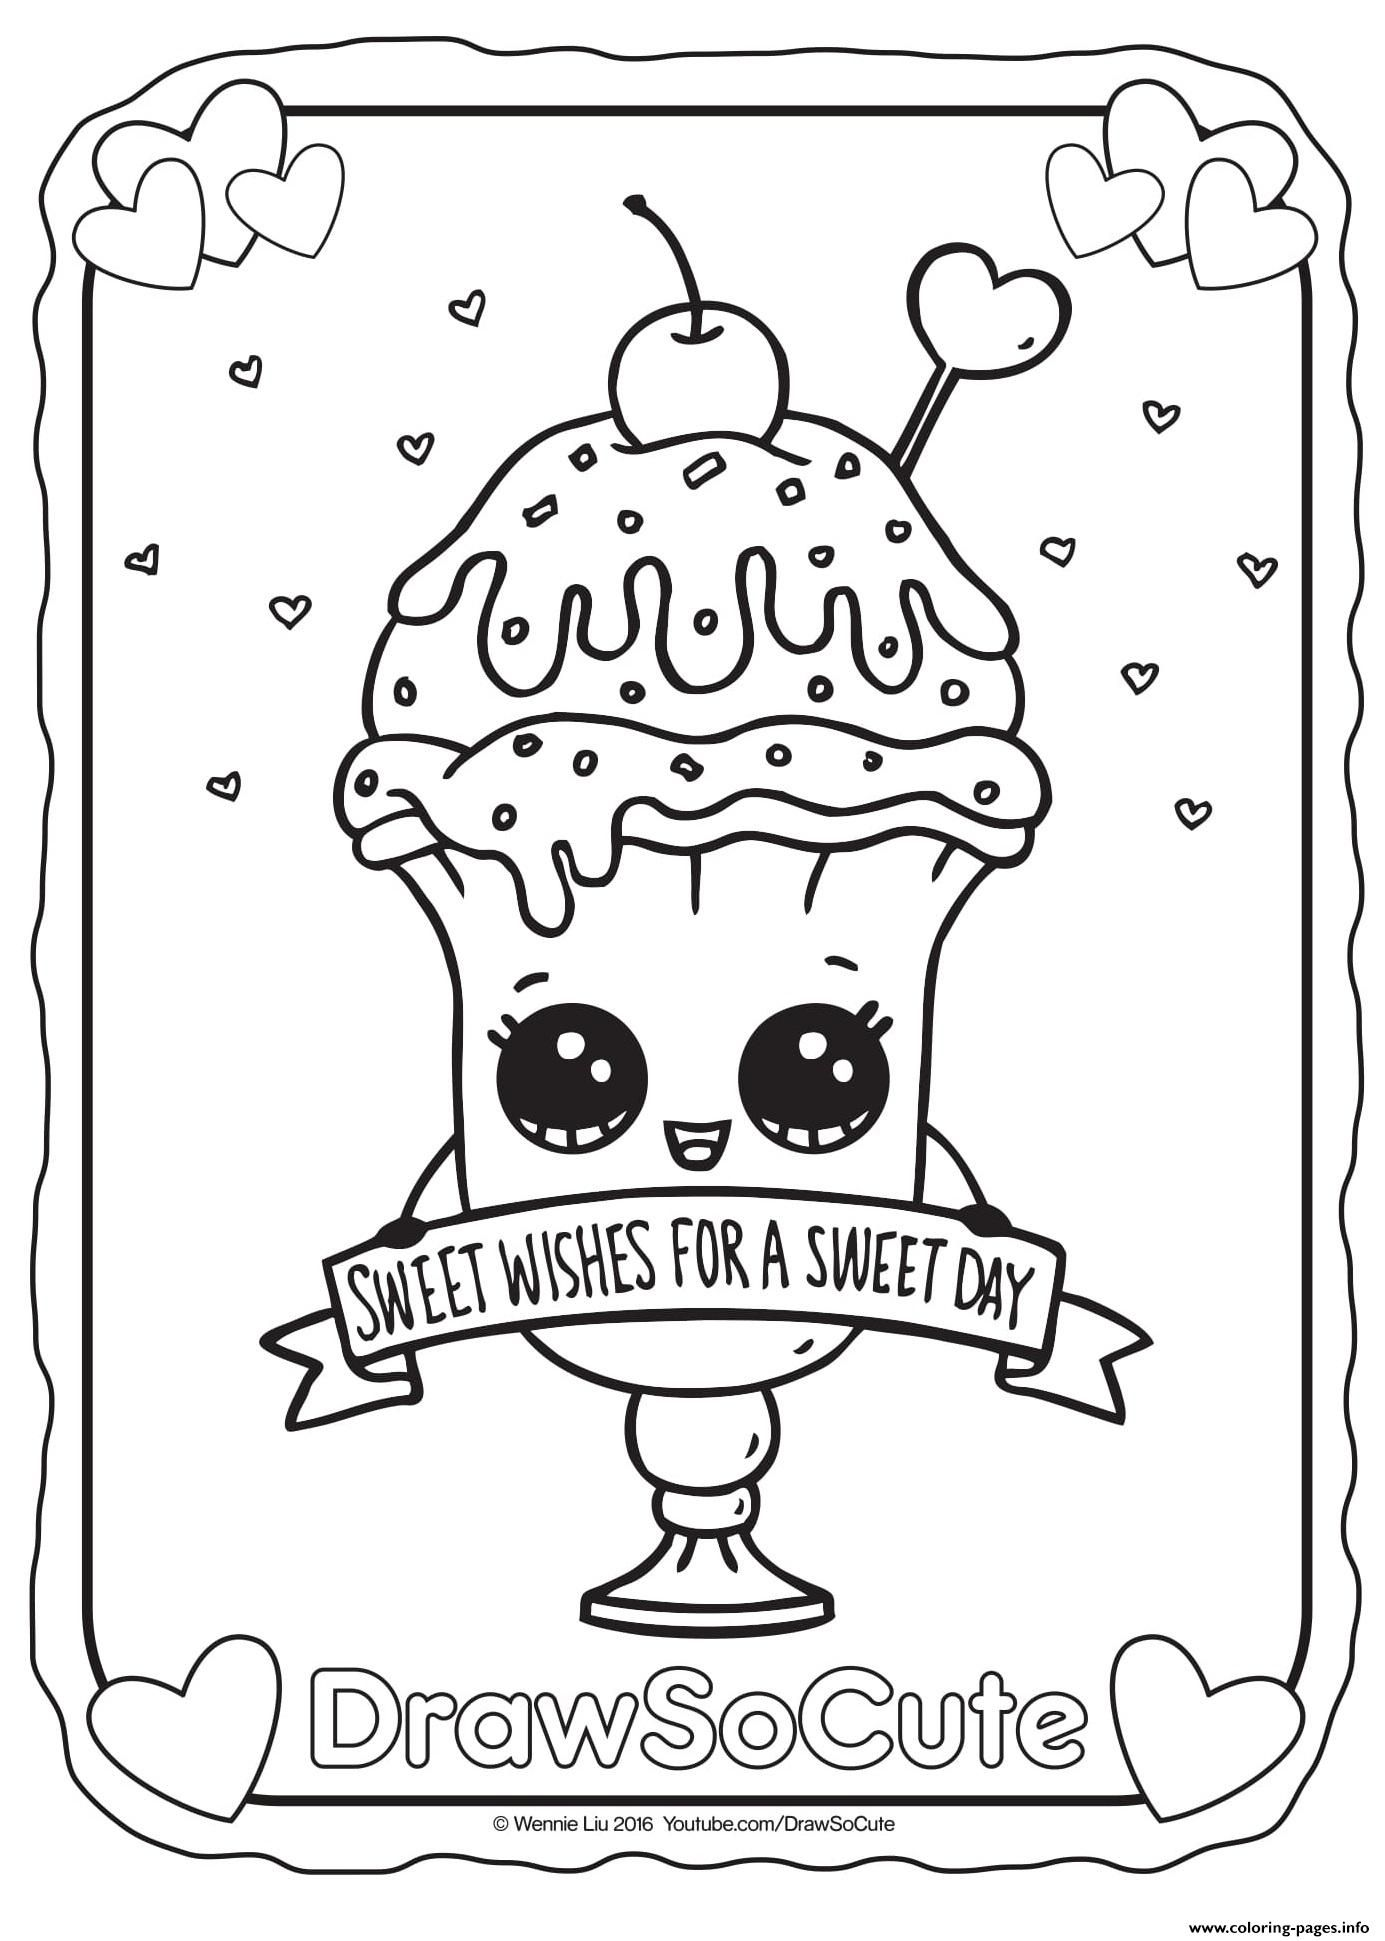 Draw So Cute Coloring Pages